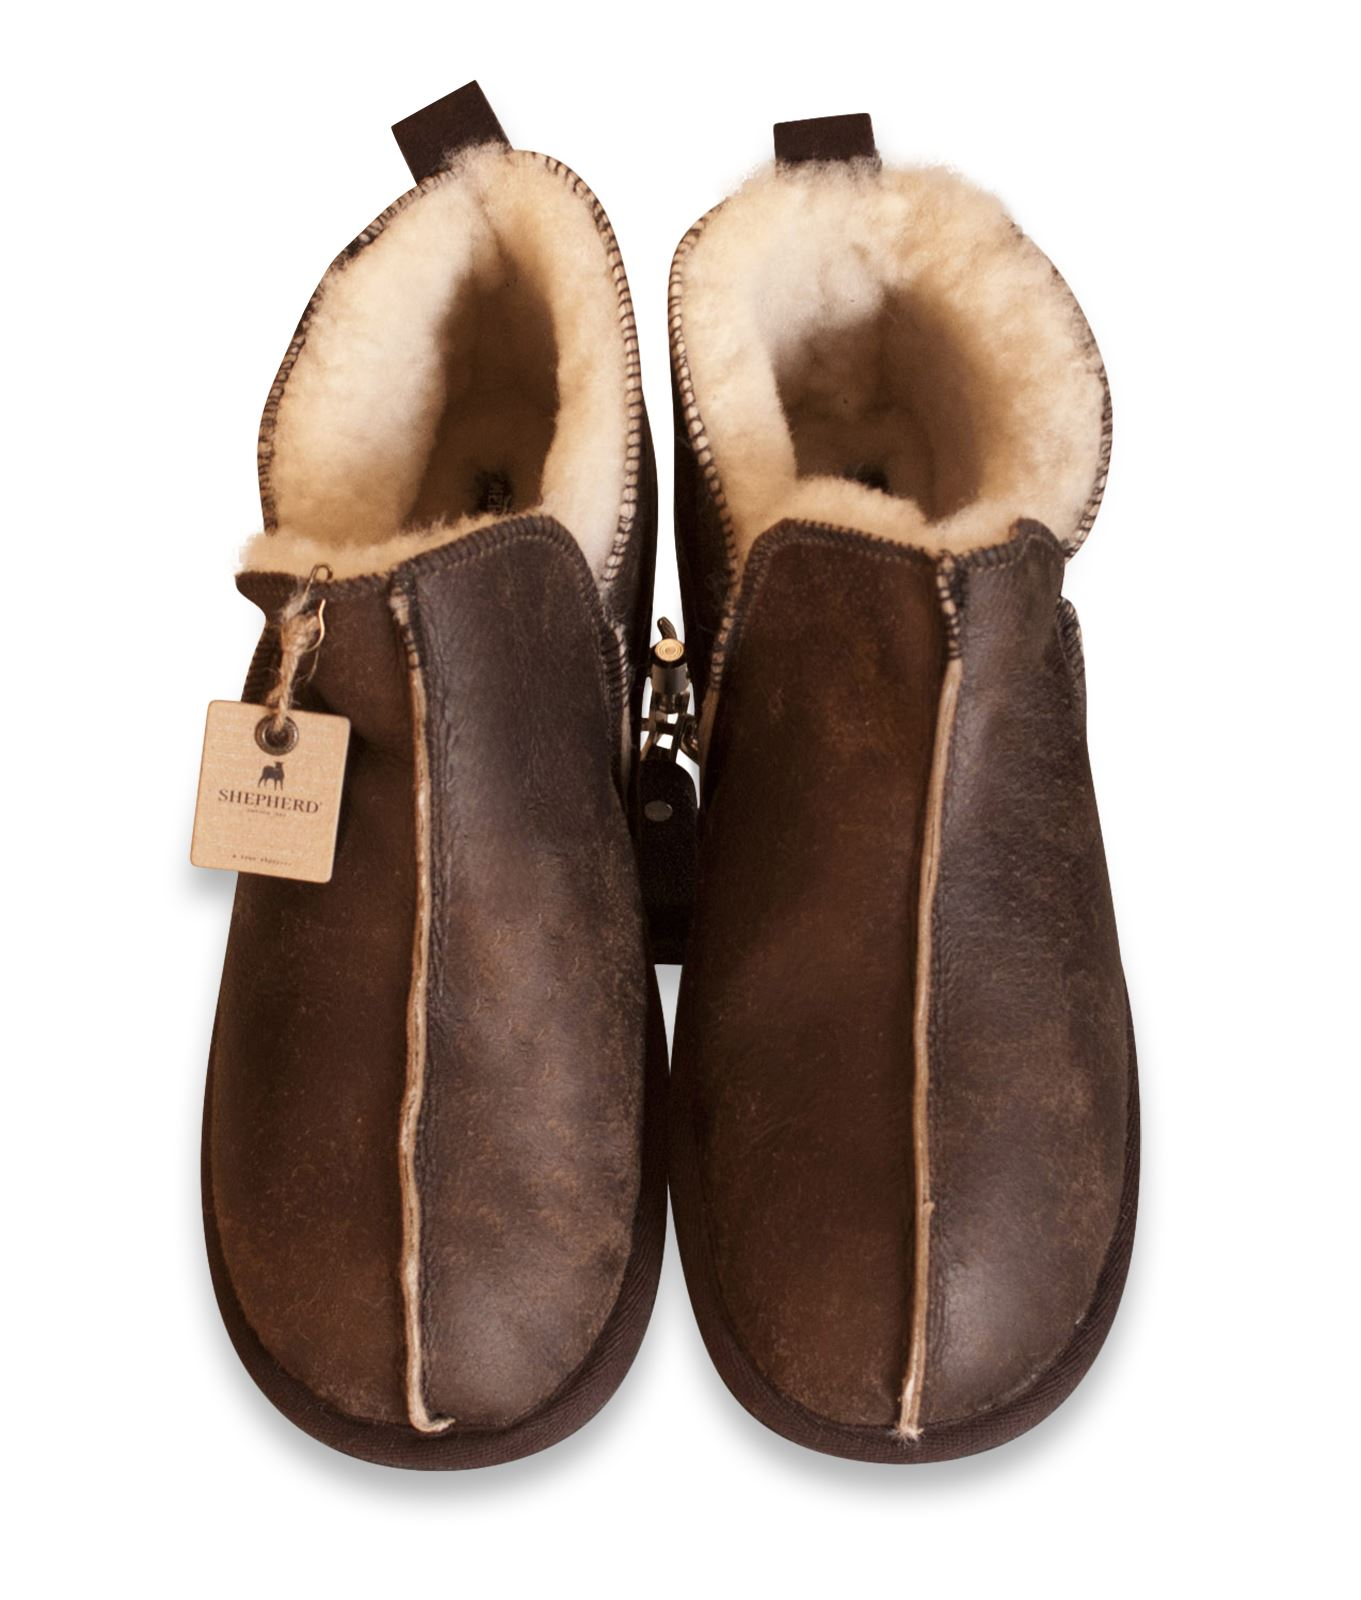 sheepskin boots shepherd-ladies-genuine-sheepskin-slippers-boots-hard-sole- KTSSERH